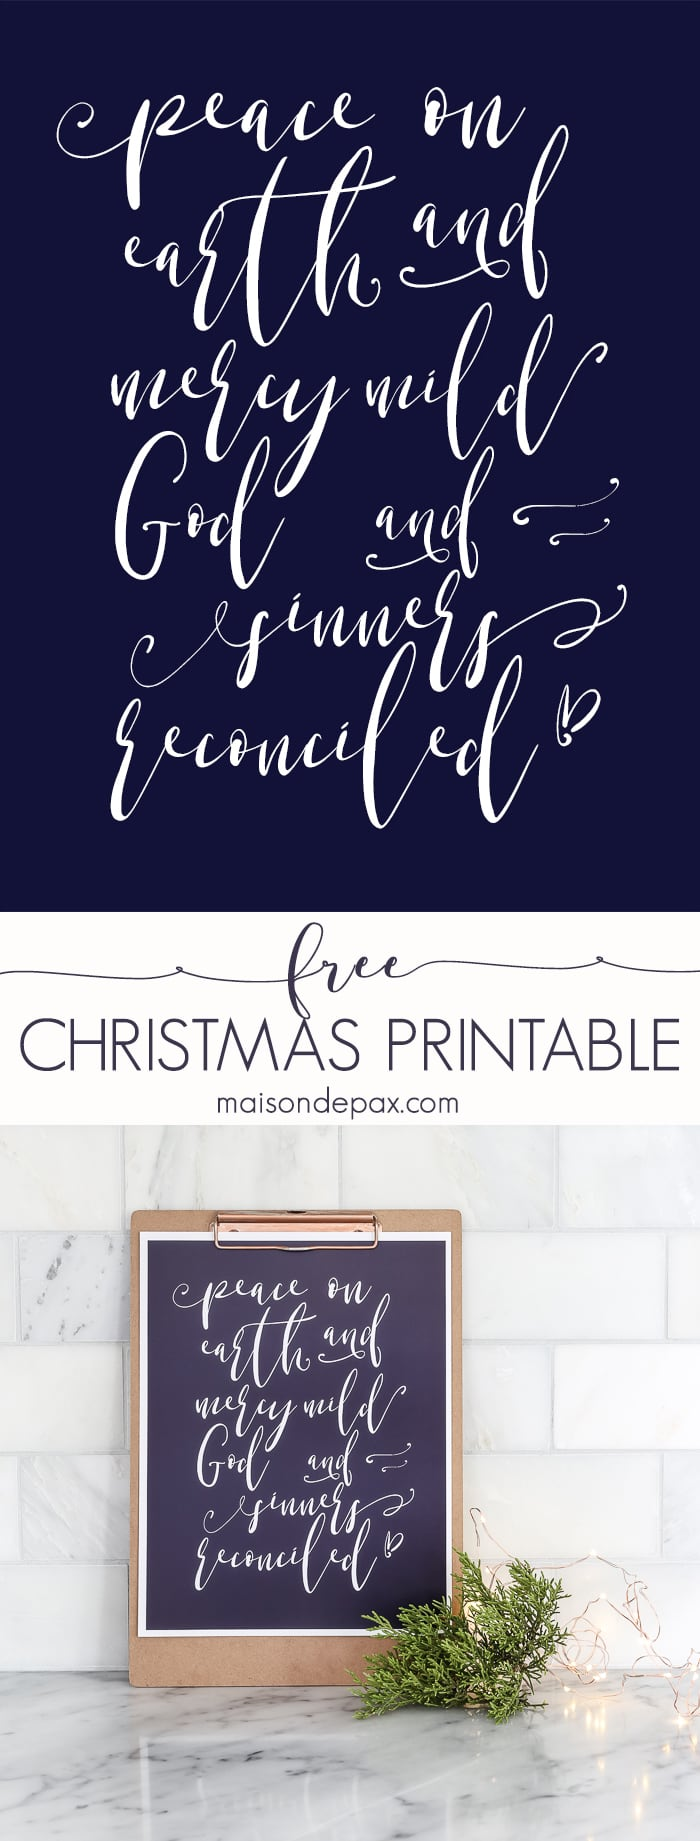 """peace on earth and mercy mild, God and sinner reconciled"" - free Christmas prtintable wall art! #christmasprintable"